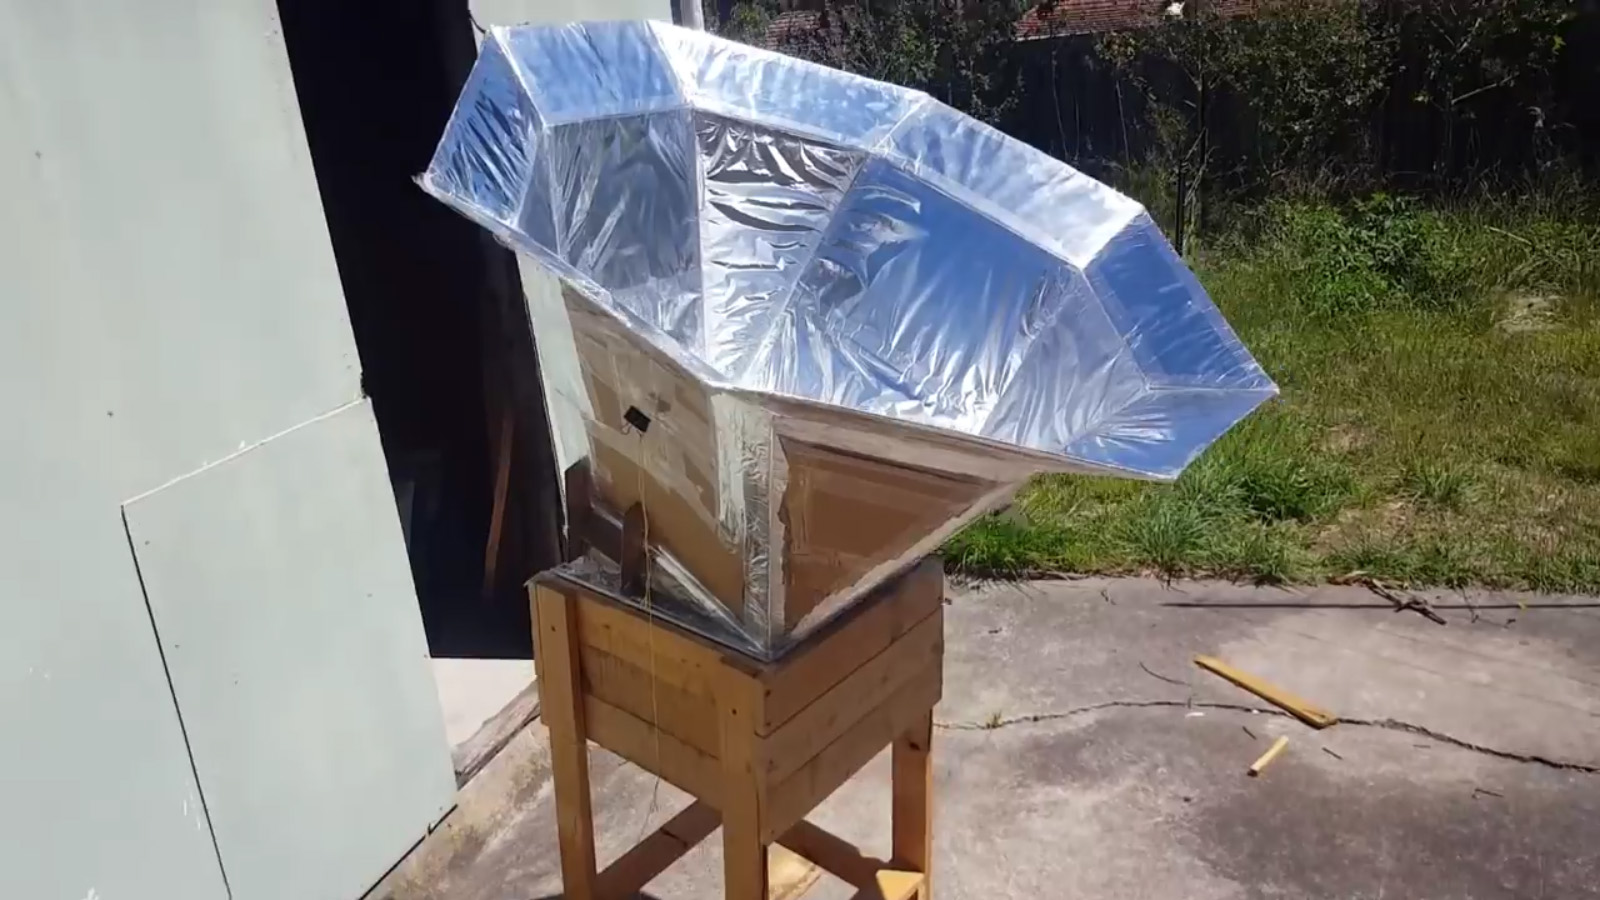 A Solar Oven Made with Aluminum Foil and Cardboard